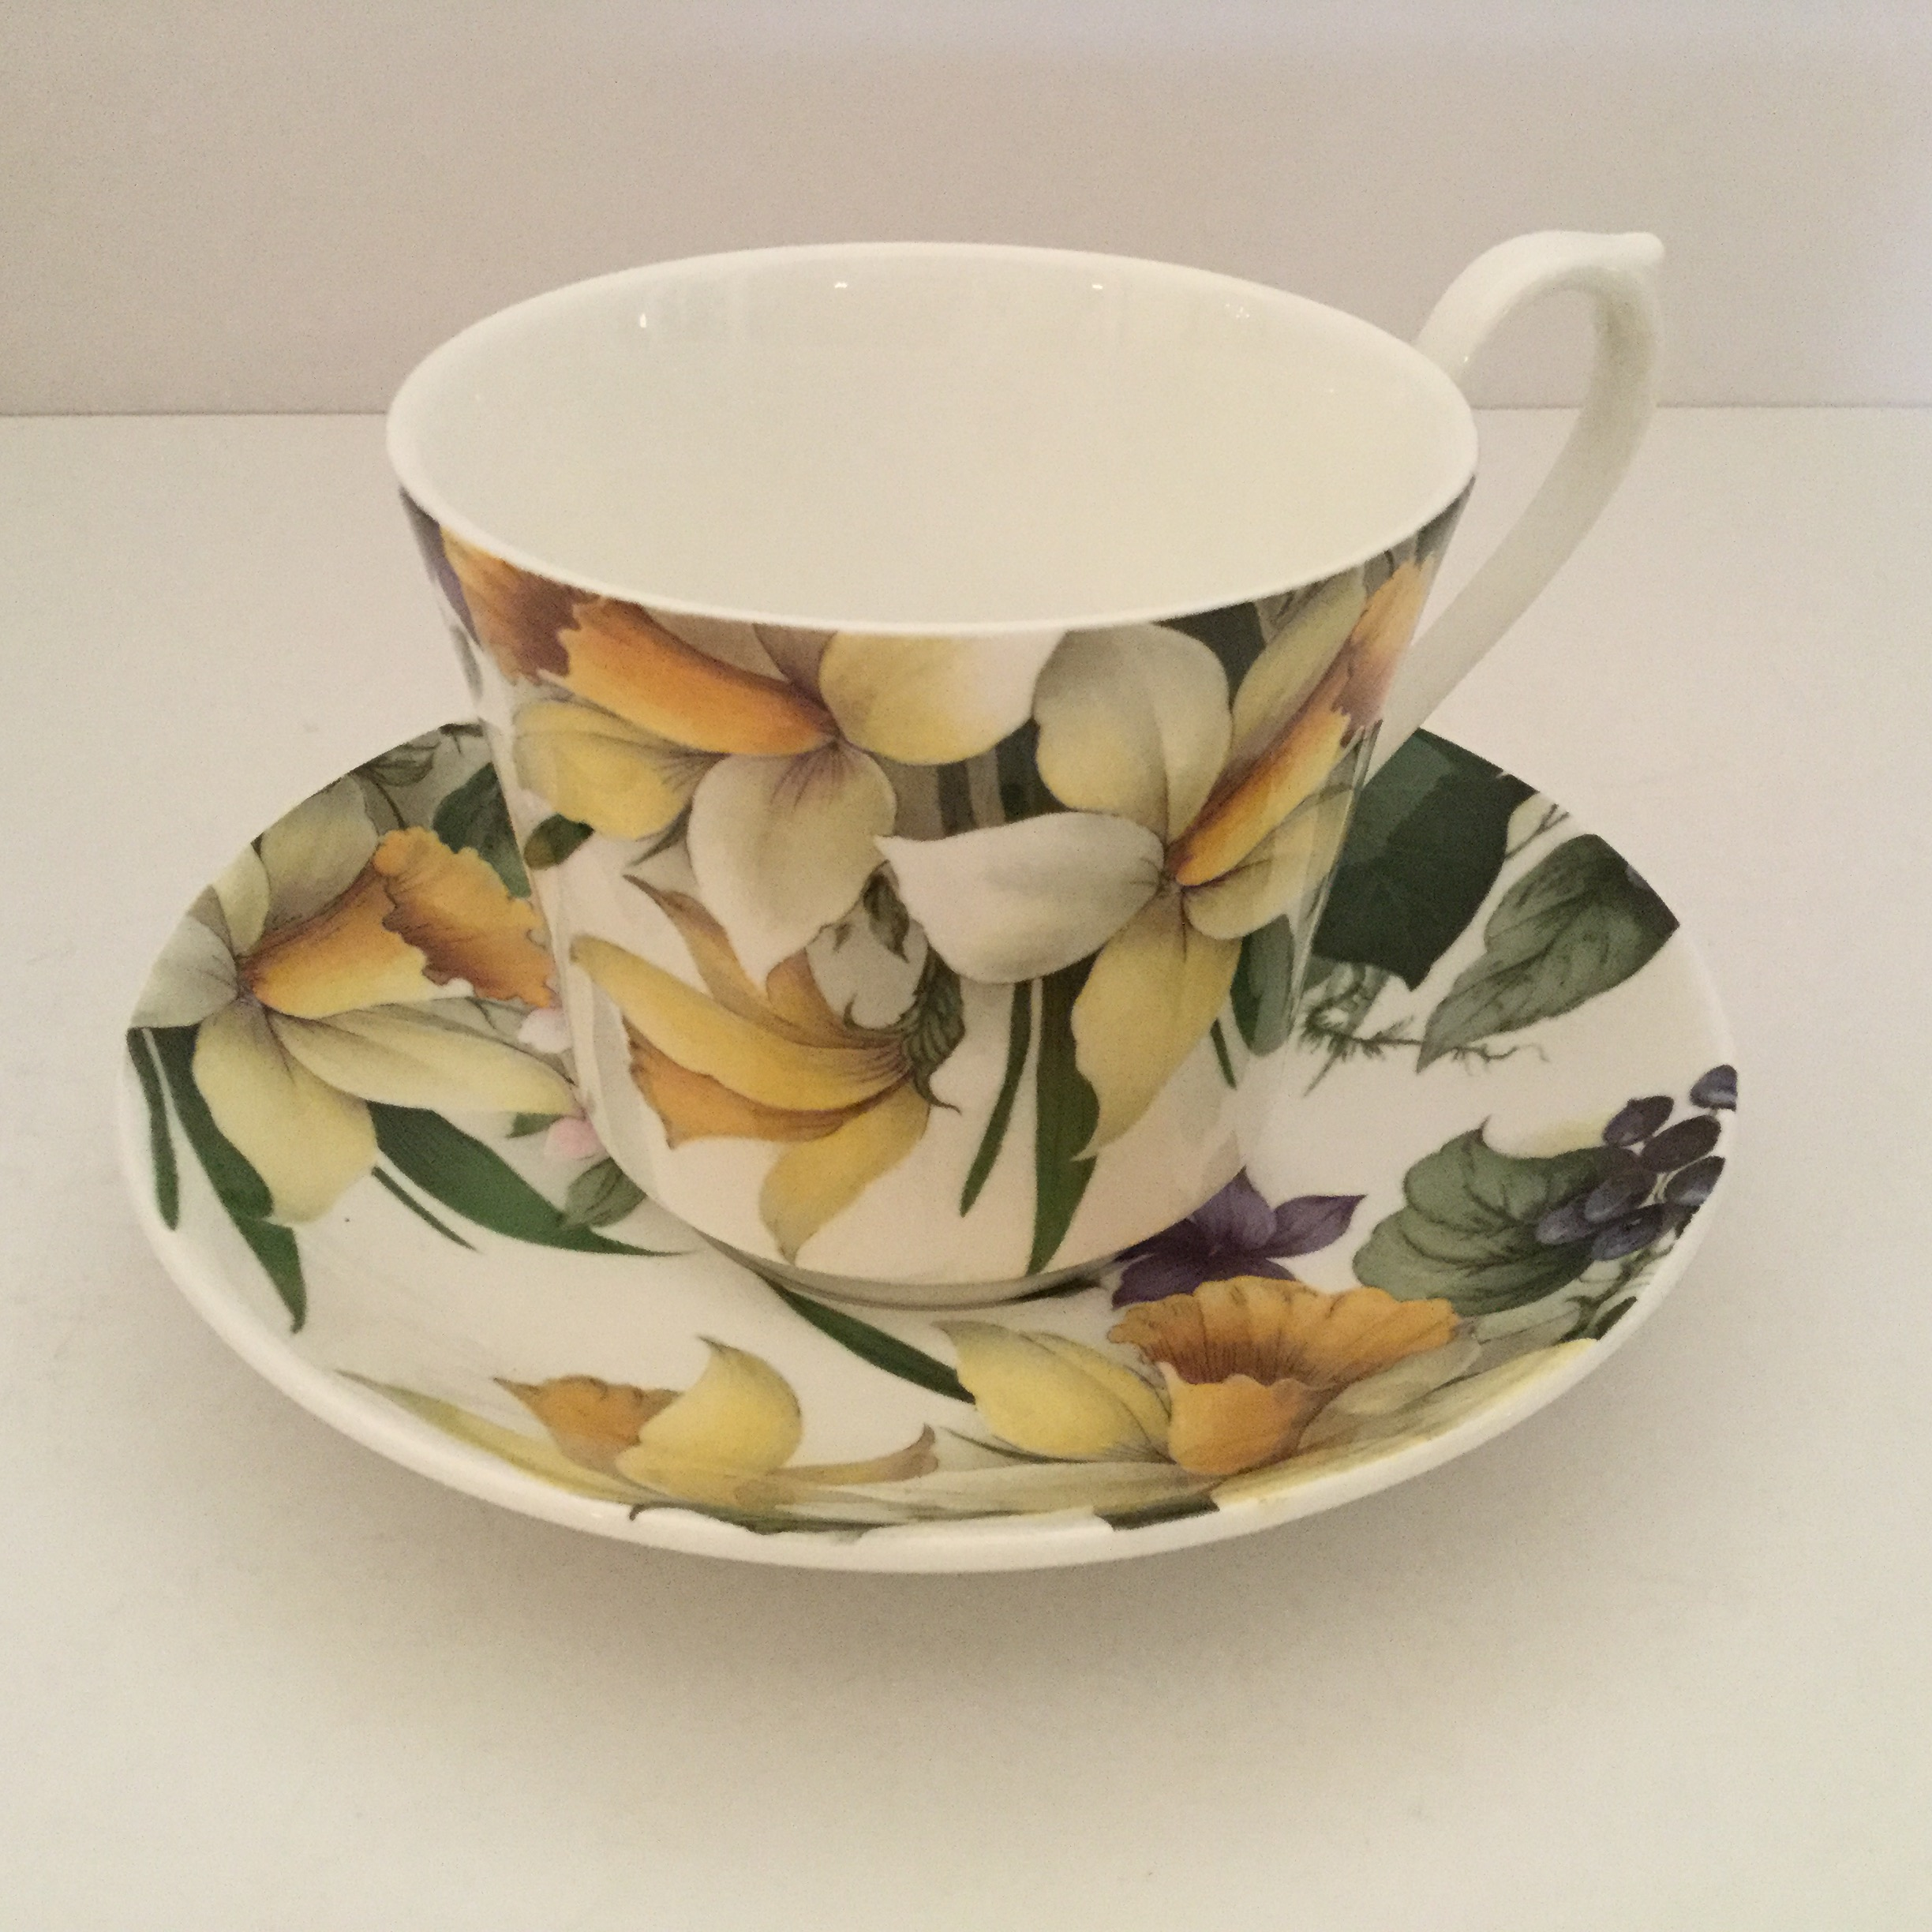 Cup and saucer from the Victoria's Secret Collection